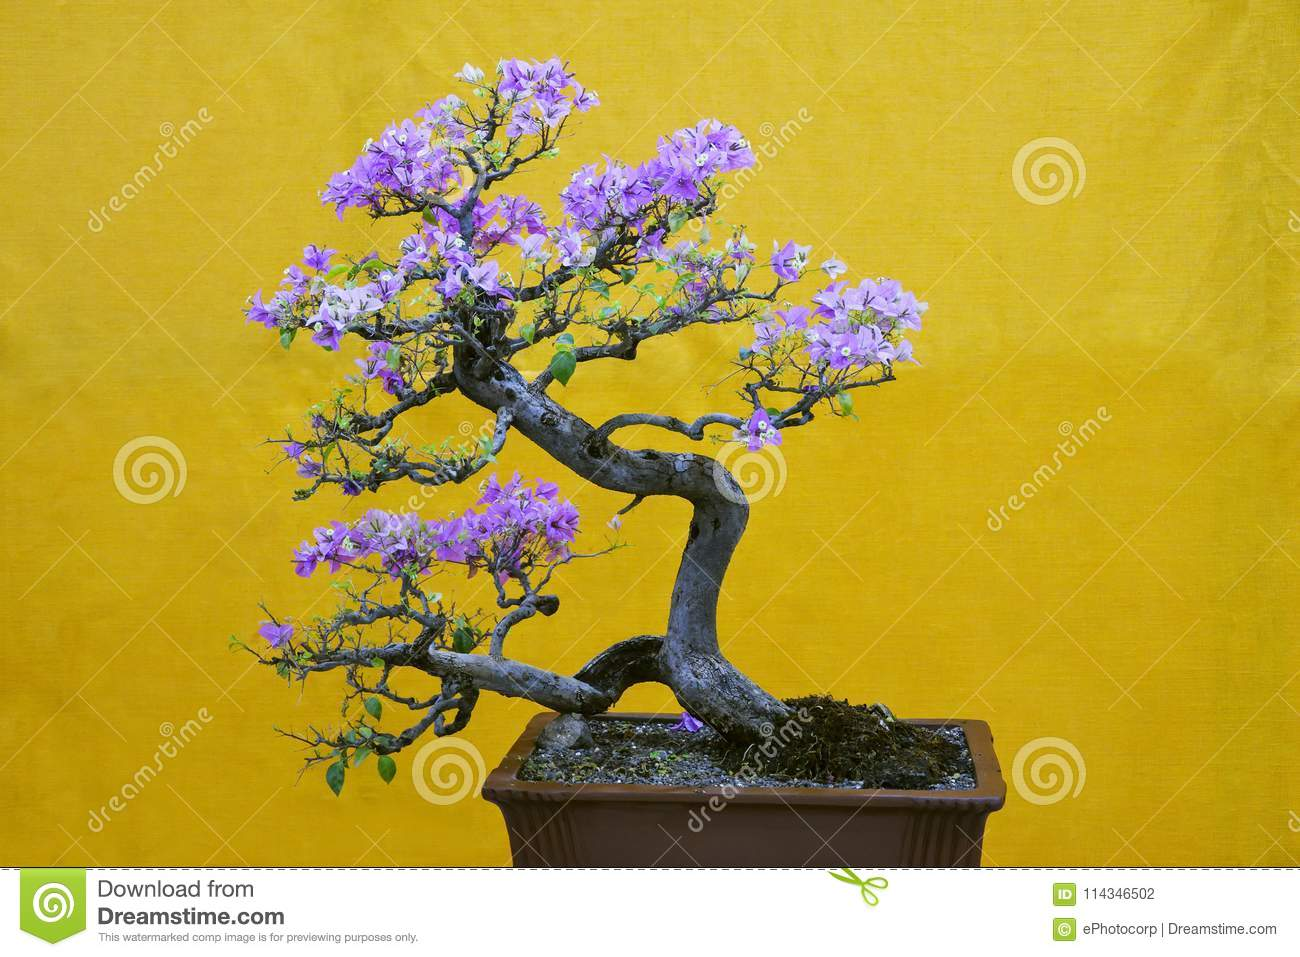 Mix-color Bougainvillea Spectabilis tree, Bonsai Exhibition Pune Shivajinagar, Pune, Maharashtra